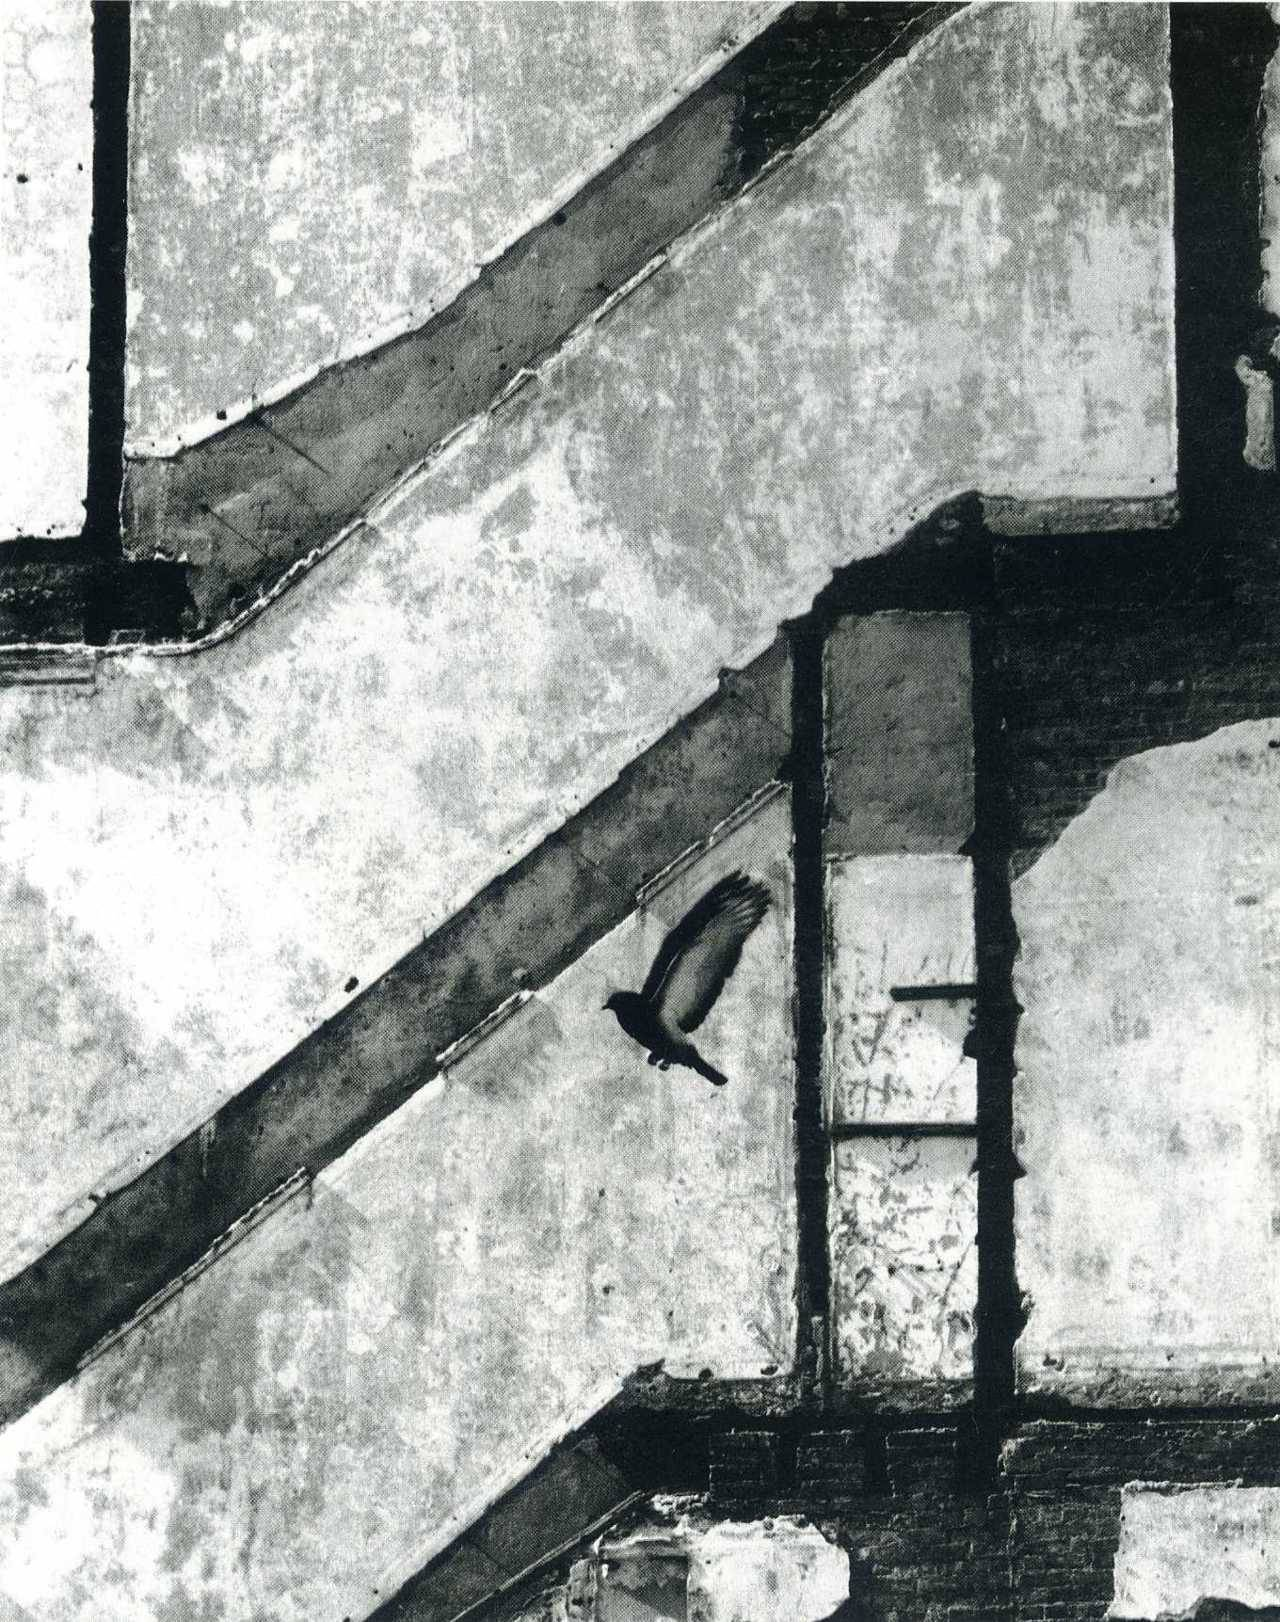 Landing Pigeon, New York, 1960 Andre Kertesz